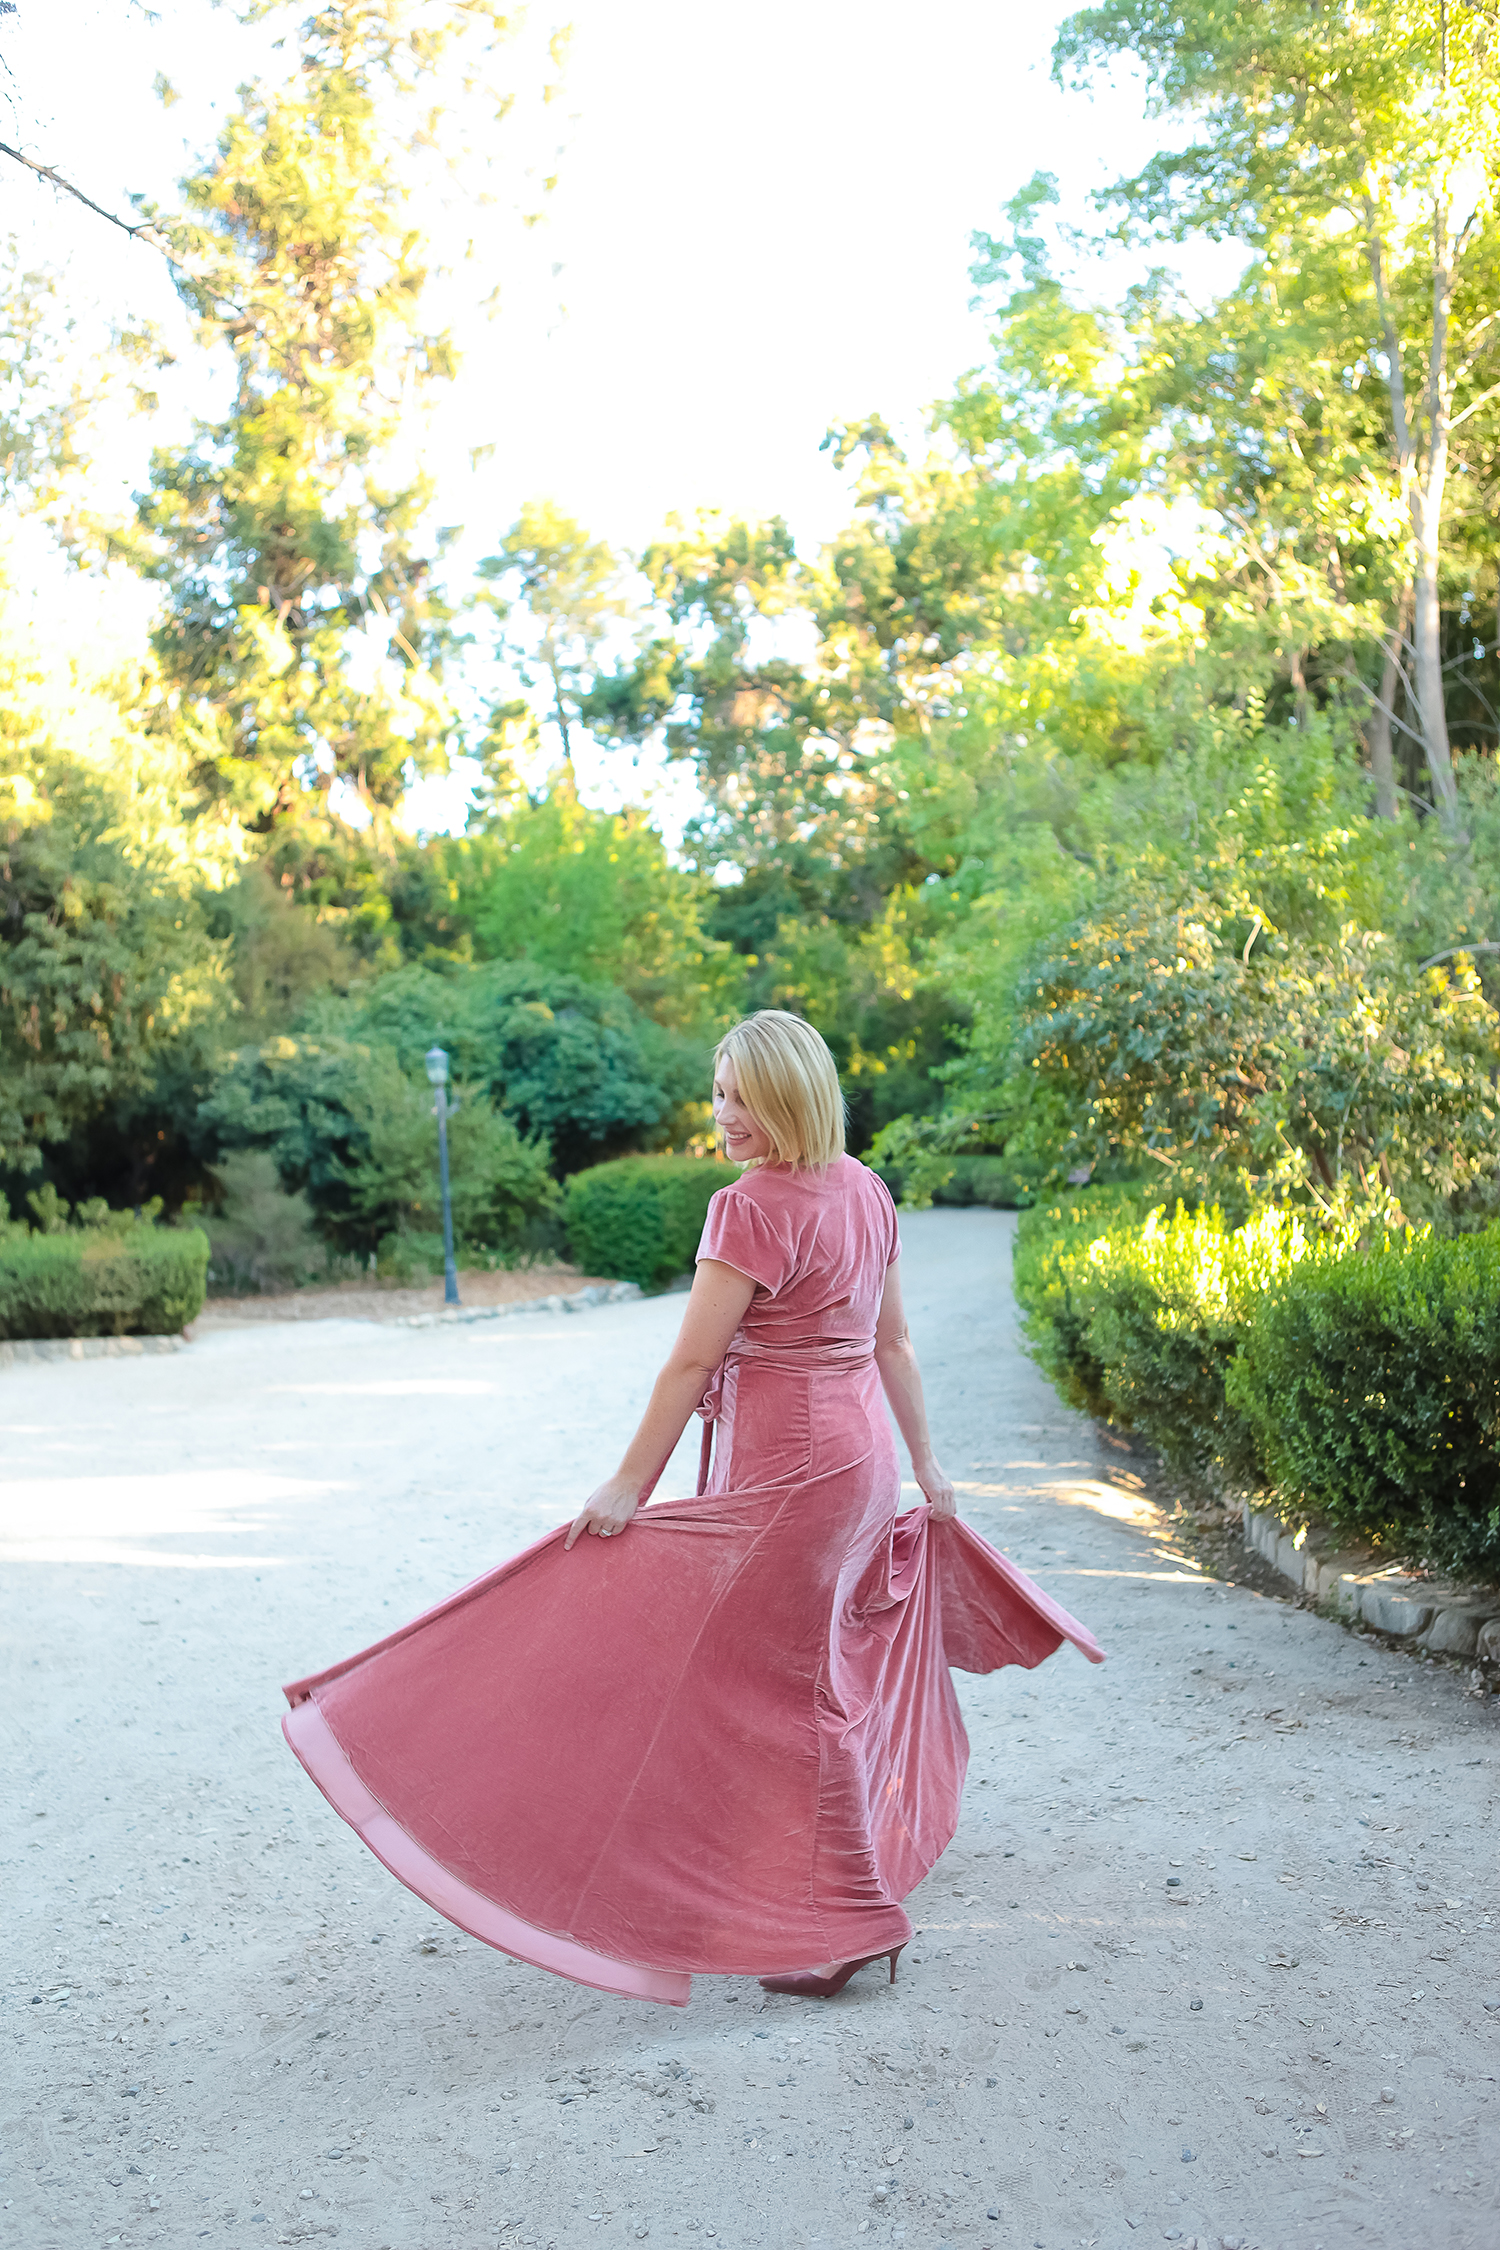 Looking for holiday dresses? This pink velvet dress fits like a dream and is the perfect Christmas party dress!